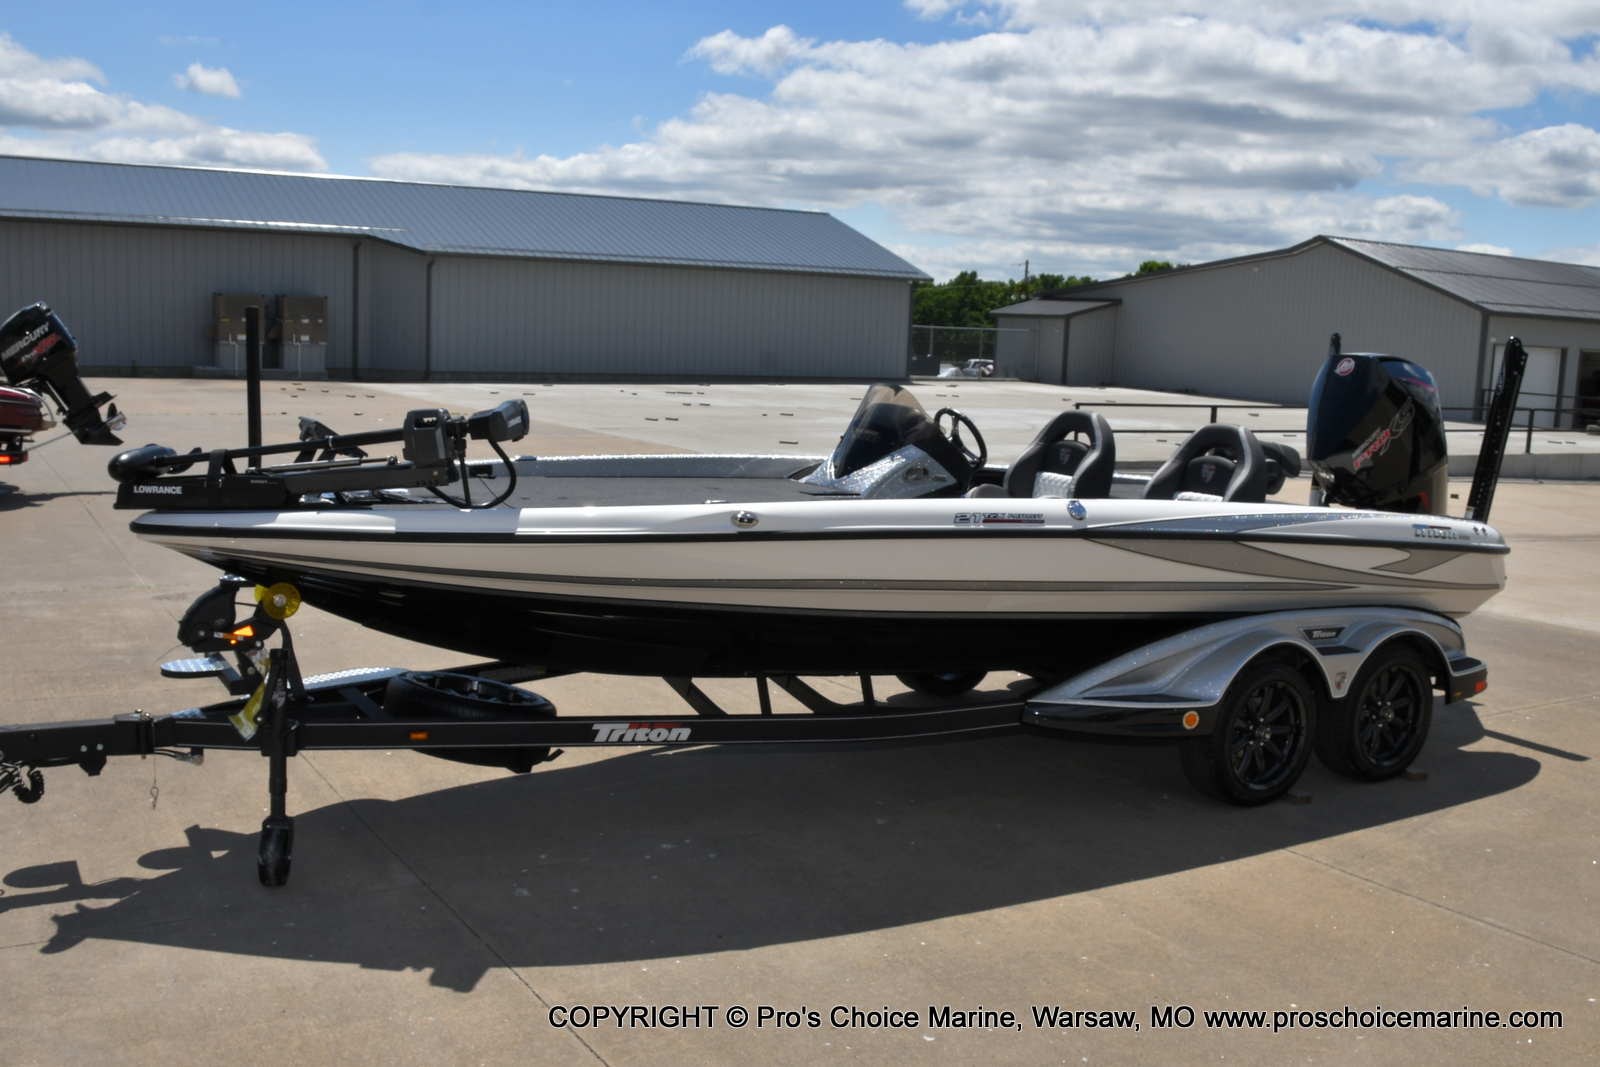 2021 Triton boat for sale, model of the boat is 21 TRX Patriot & Image # 2 of 50